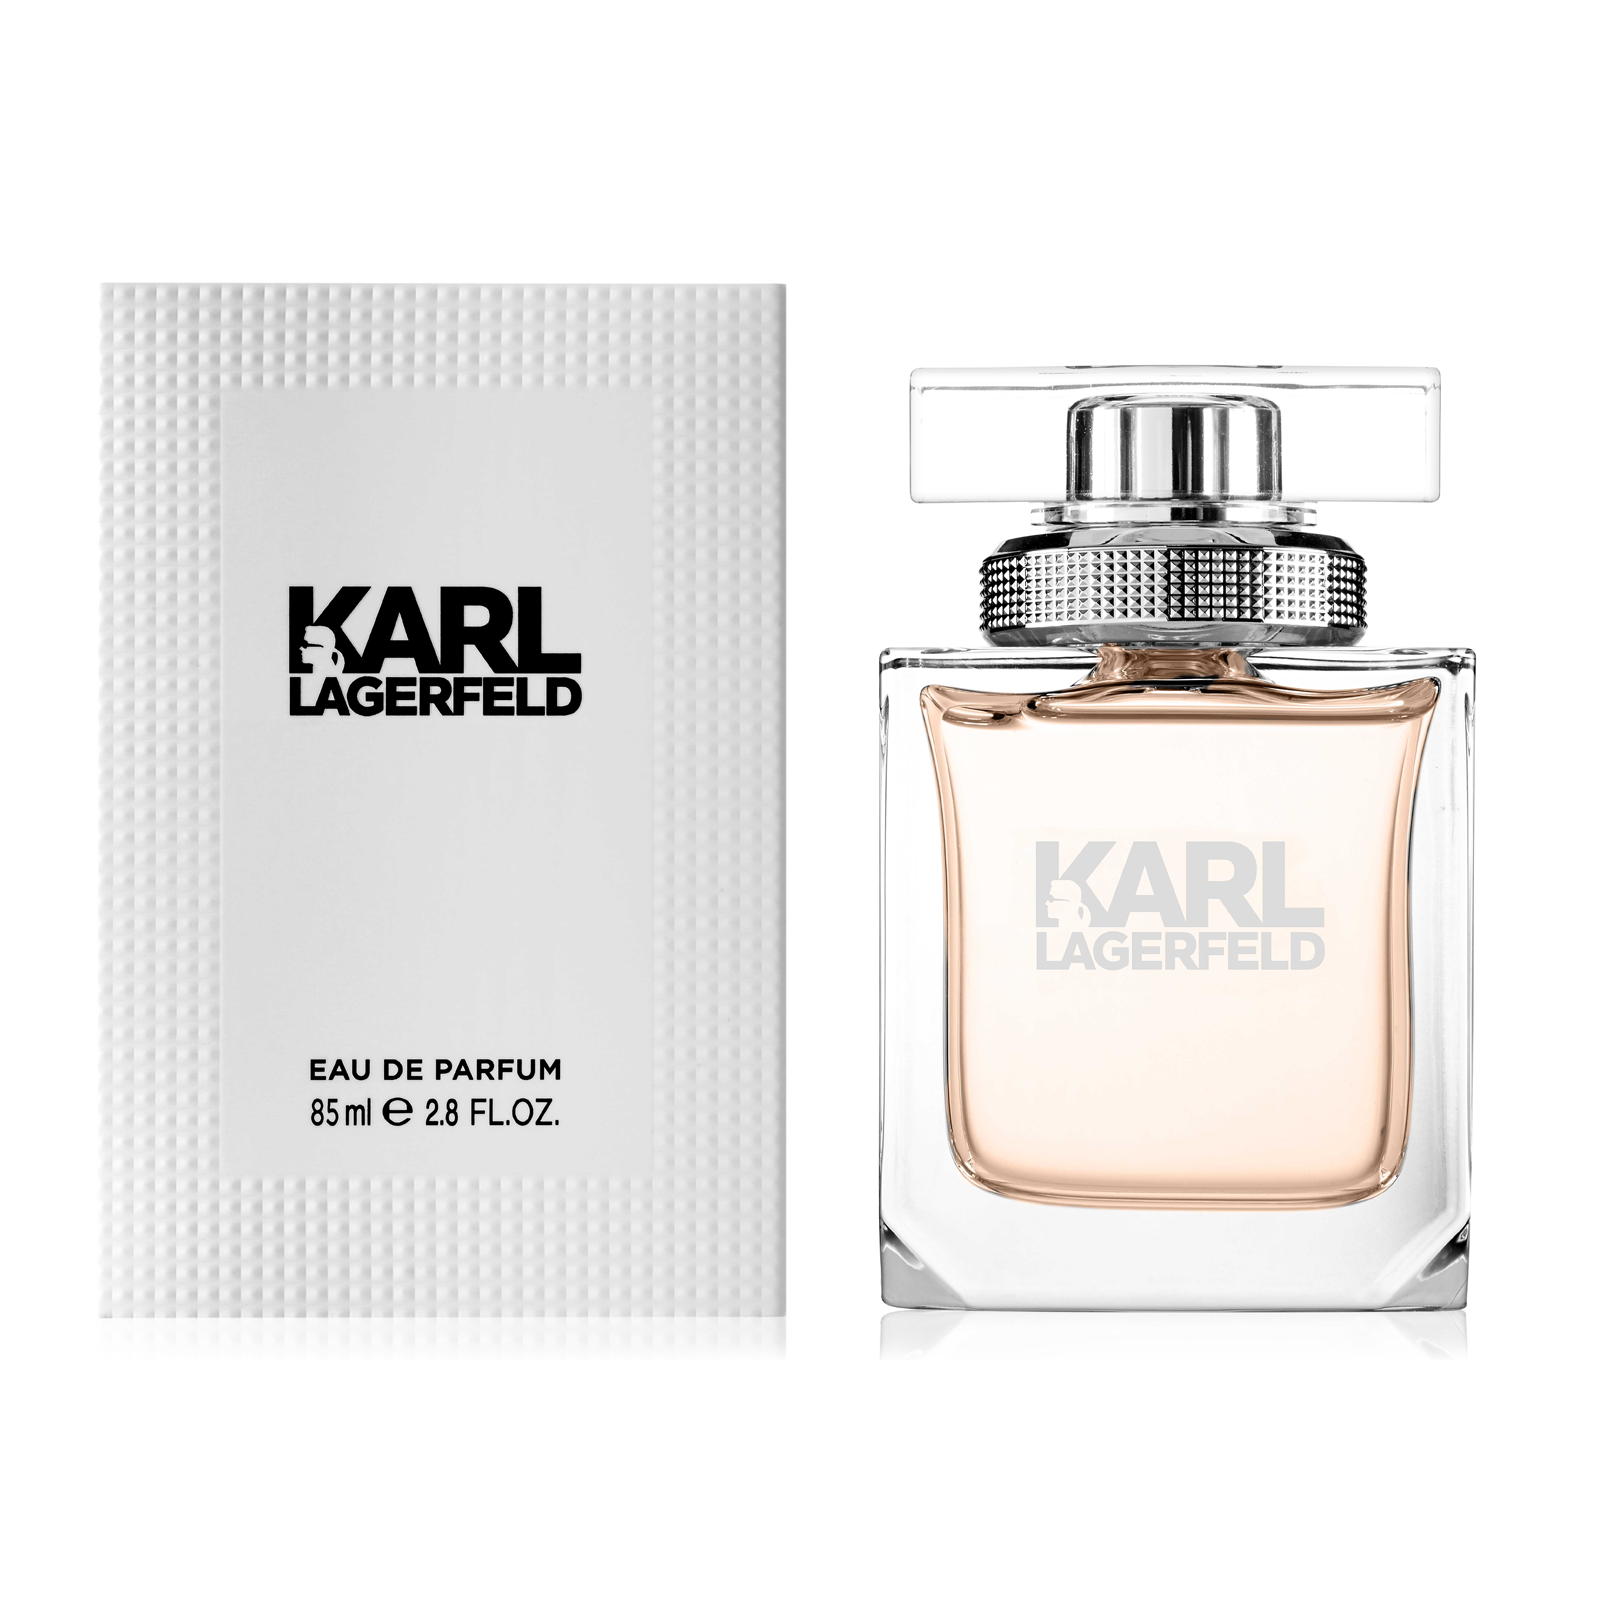 karl_lagerfeld_for_women_eau_de_parfum_85ml_1395230303.png